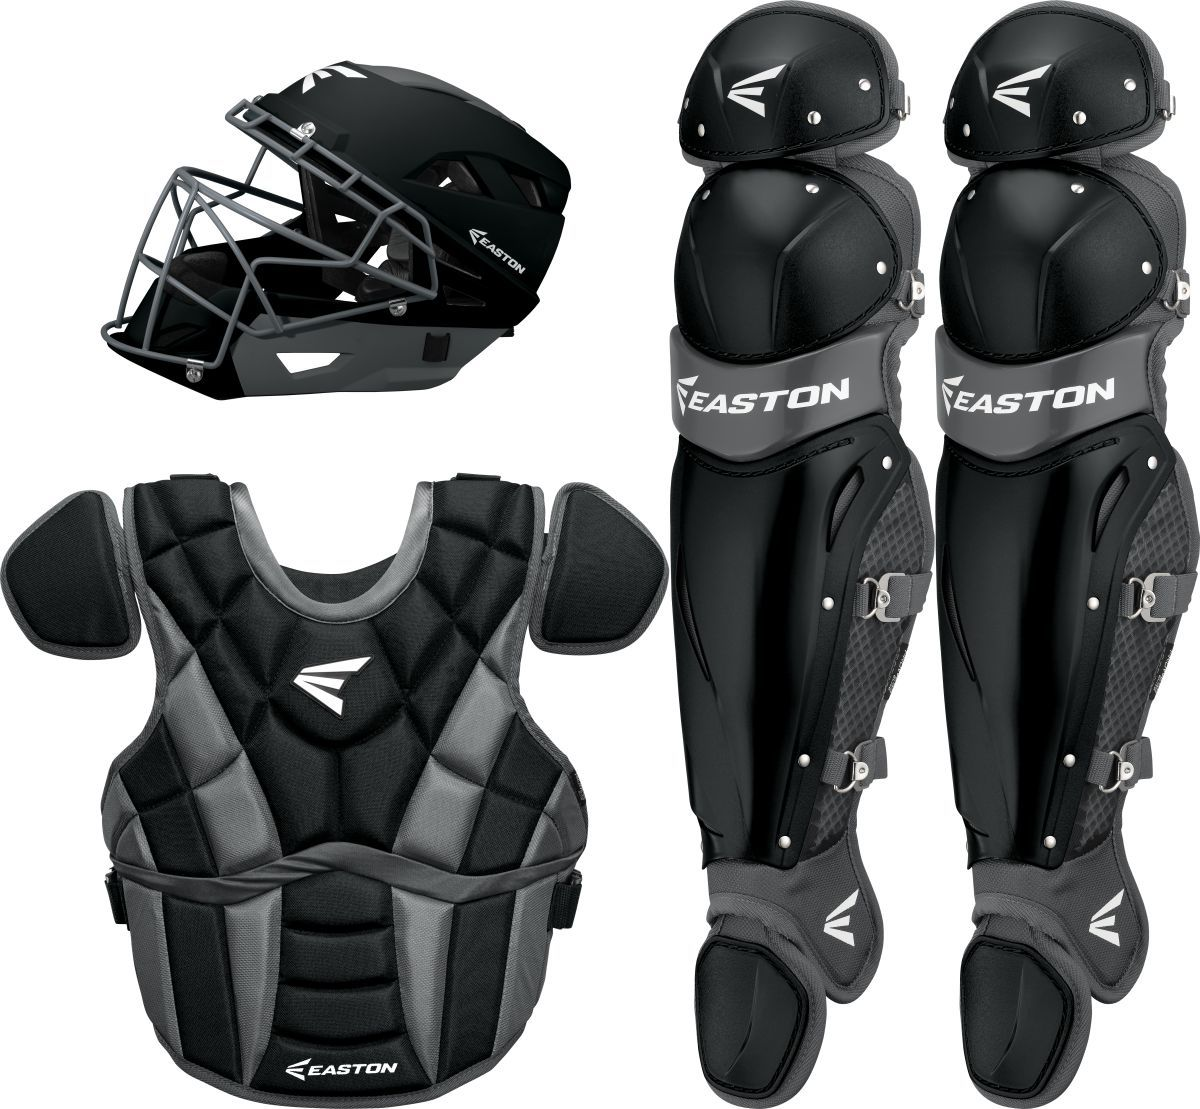 Easton Women's Prowess Fastpitch Catcher's Set